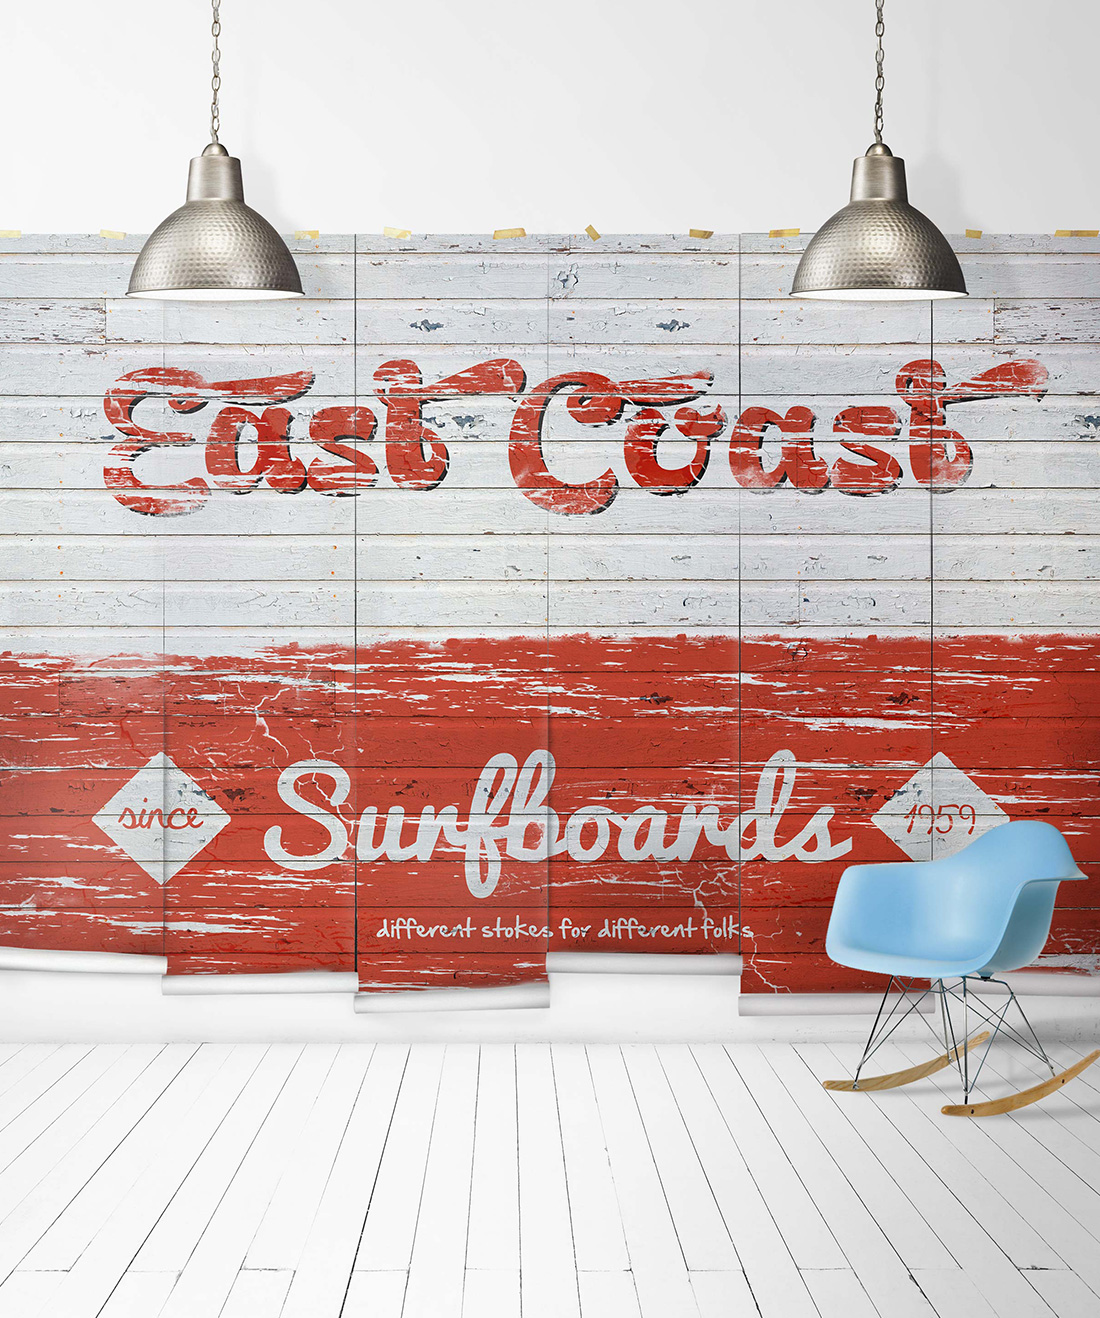 East Coast Surfboards Mural